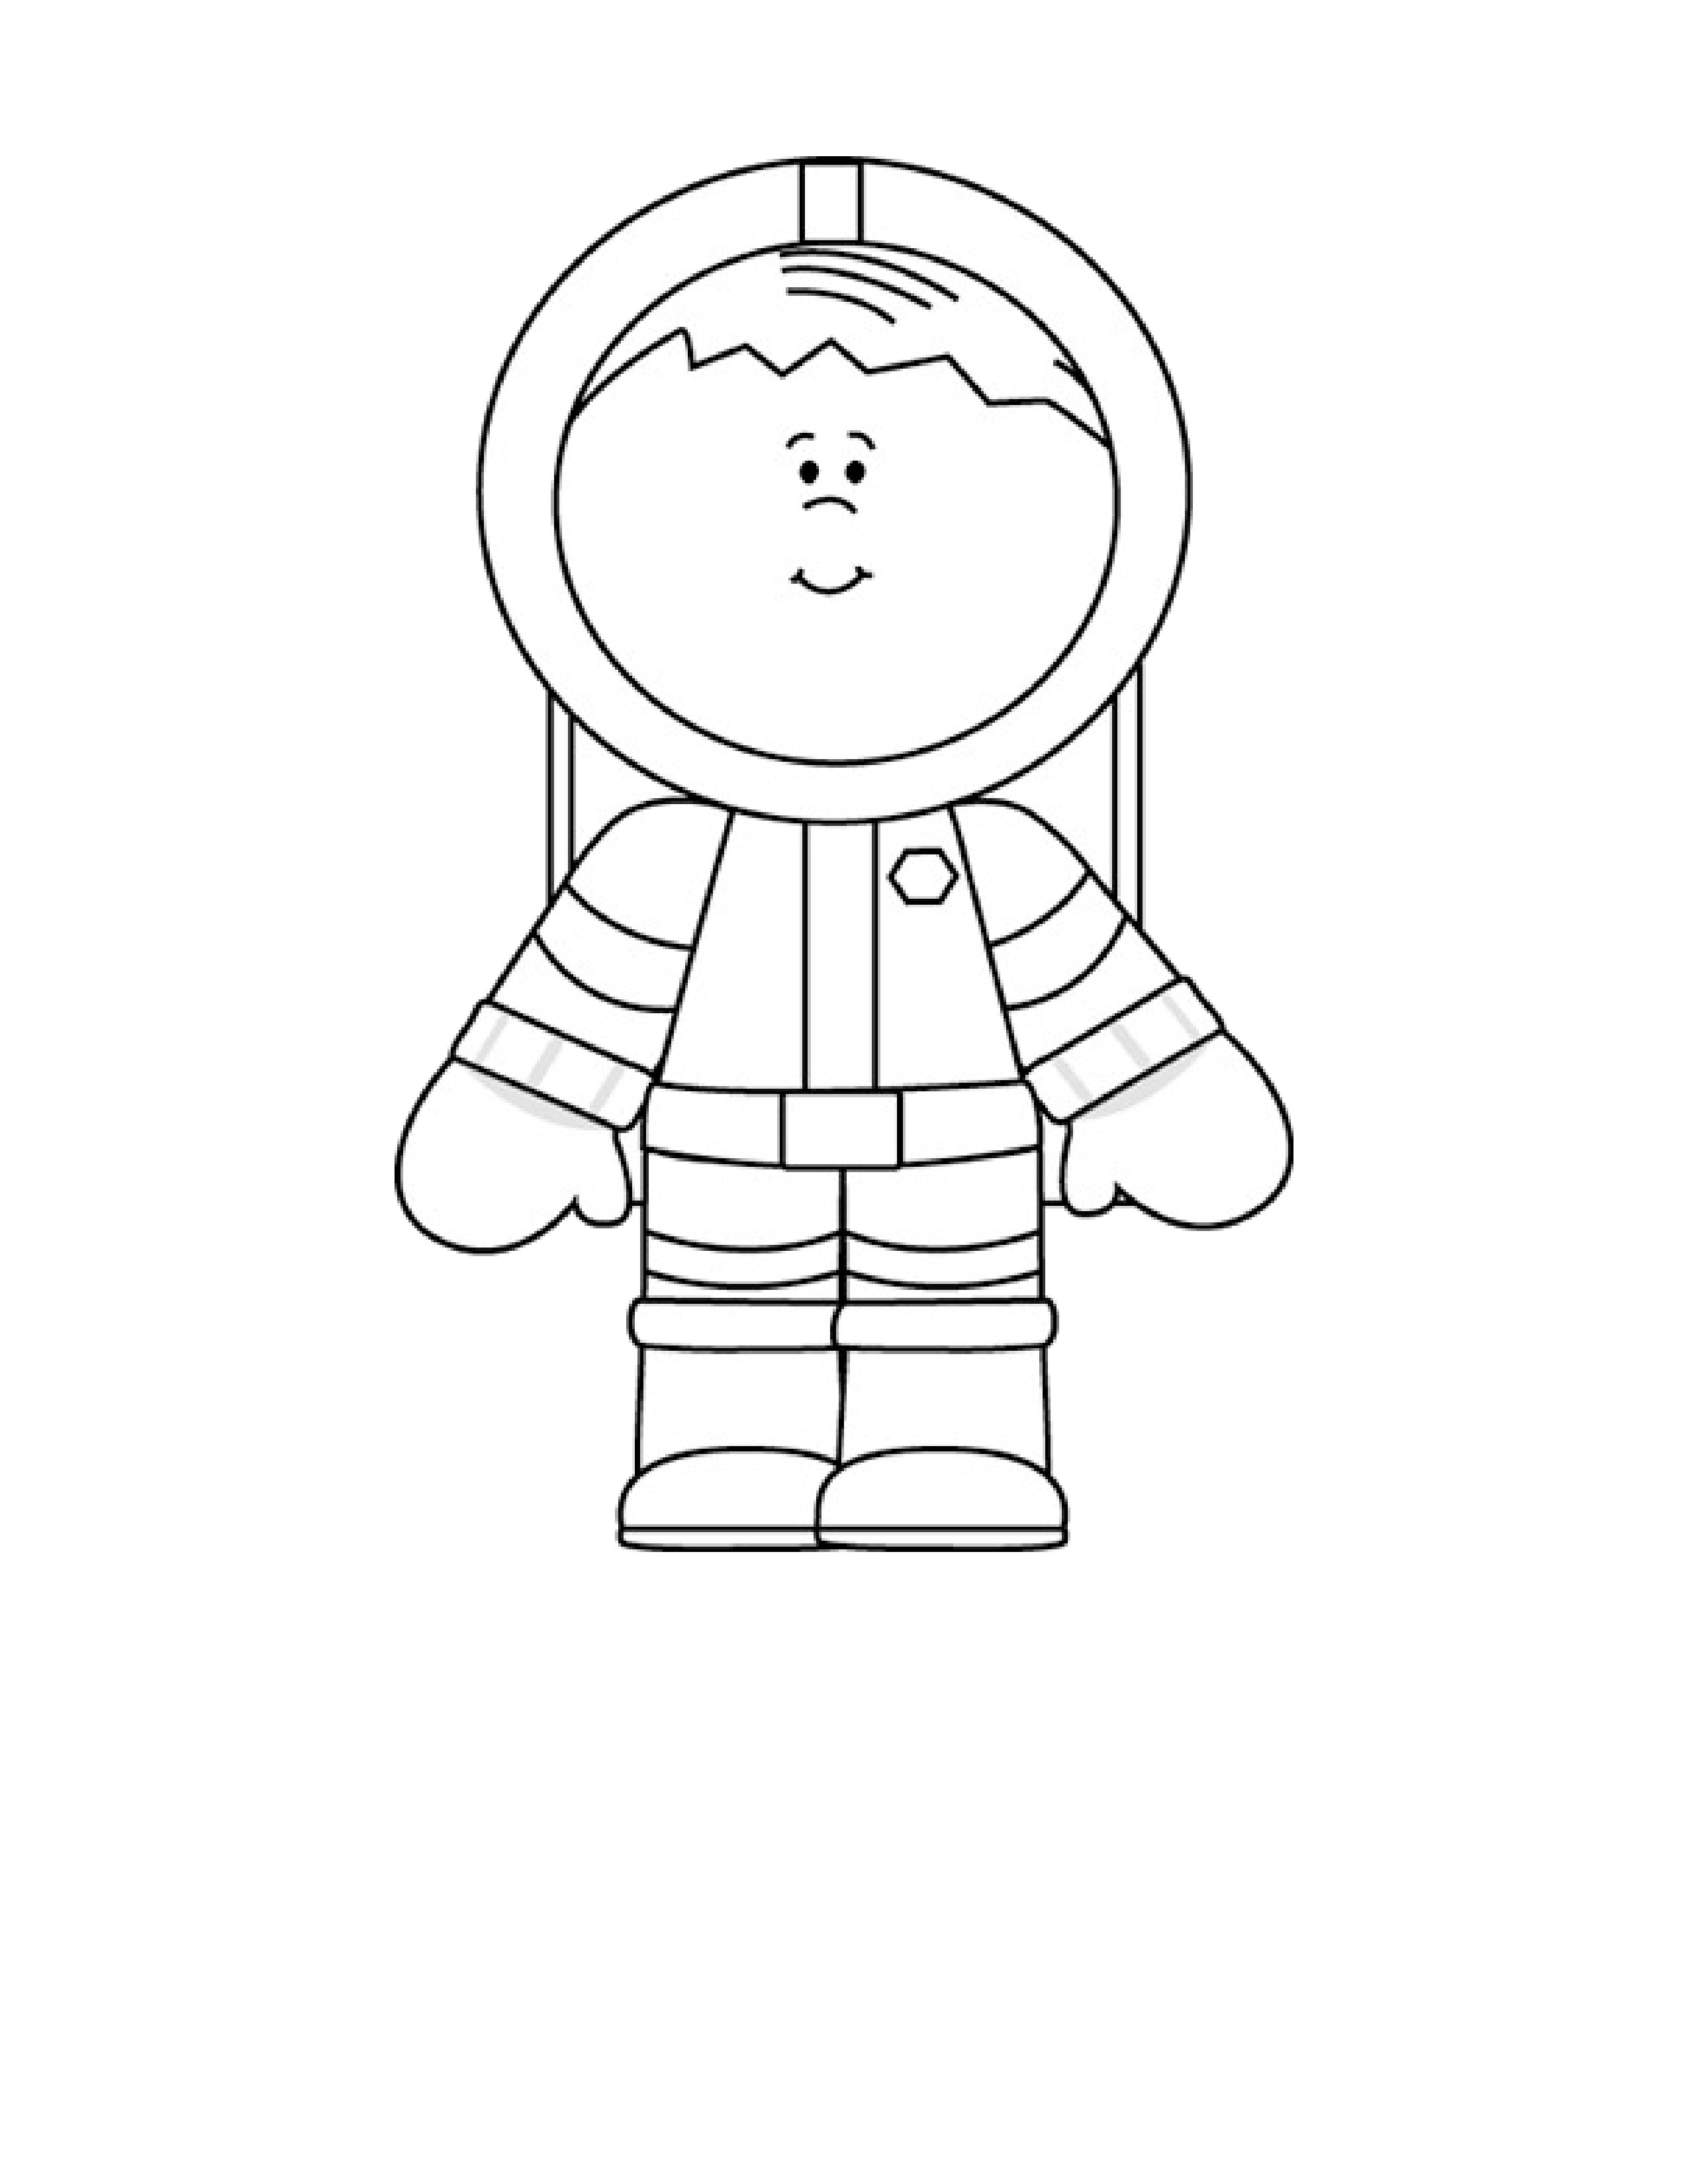 astronaut coloring pages - astronaut coloring pages 5